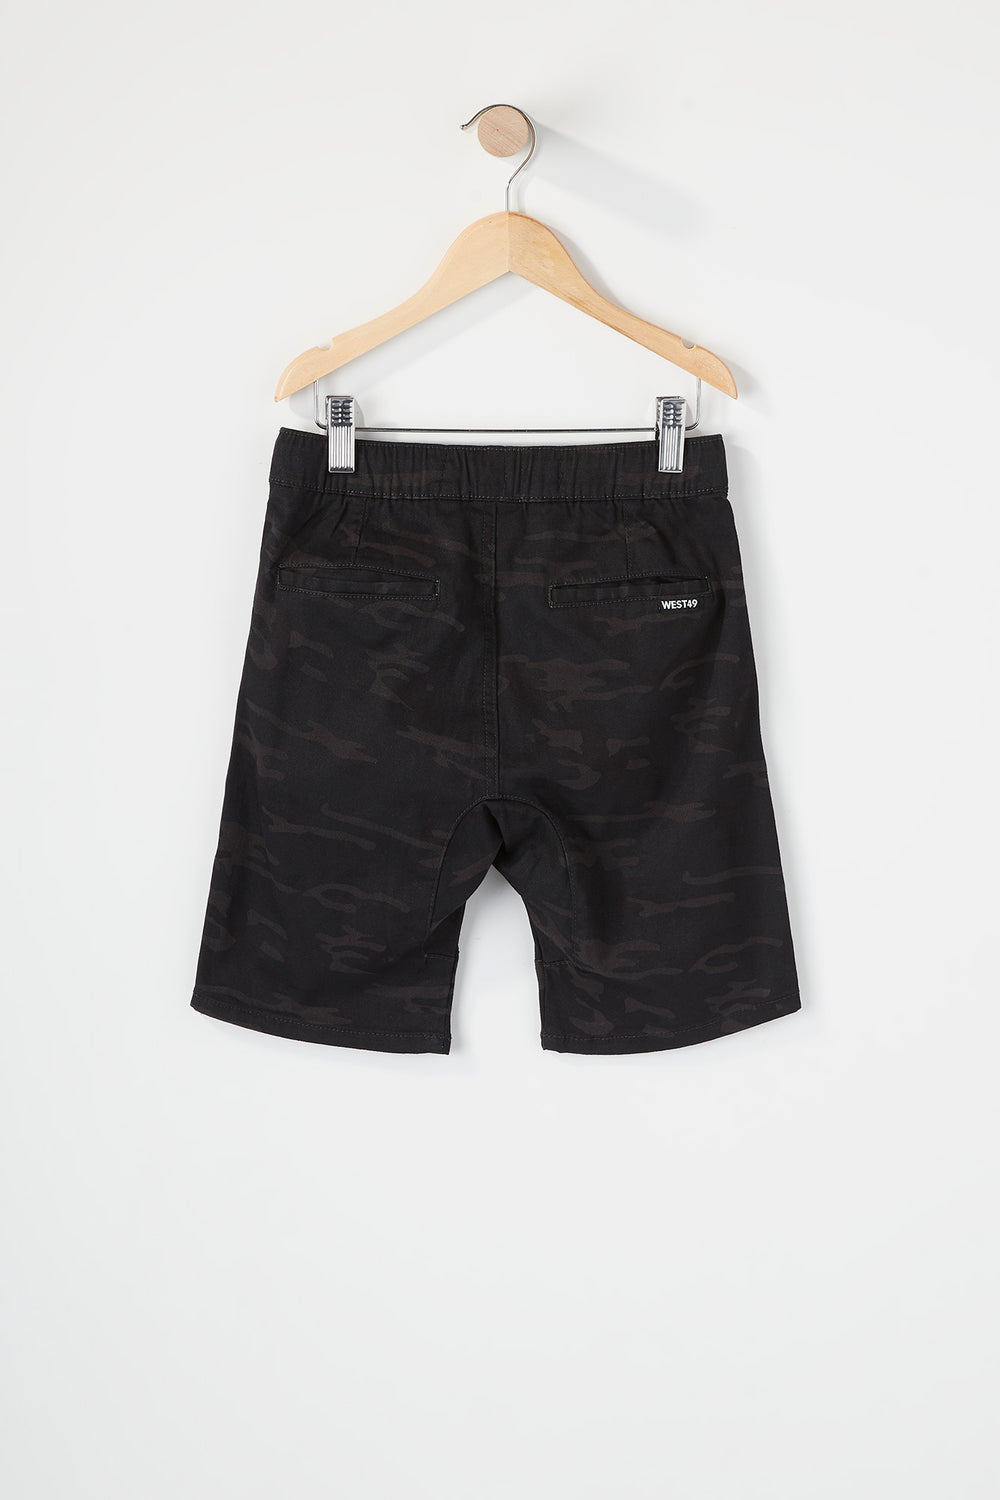 West49 Boys Camo Jogger Short Black with White